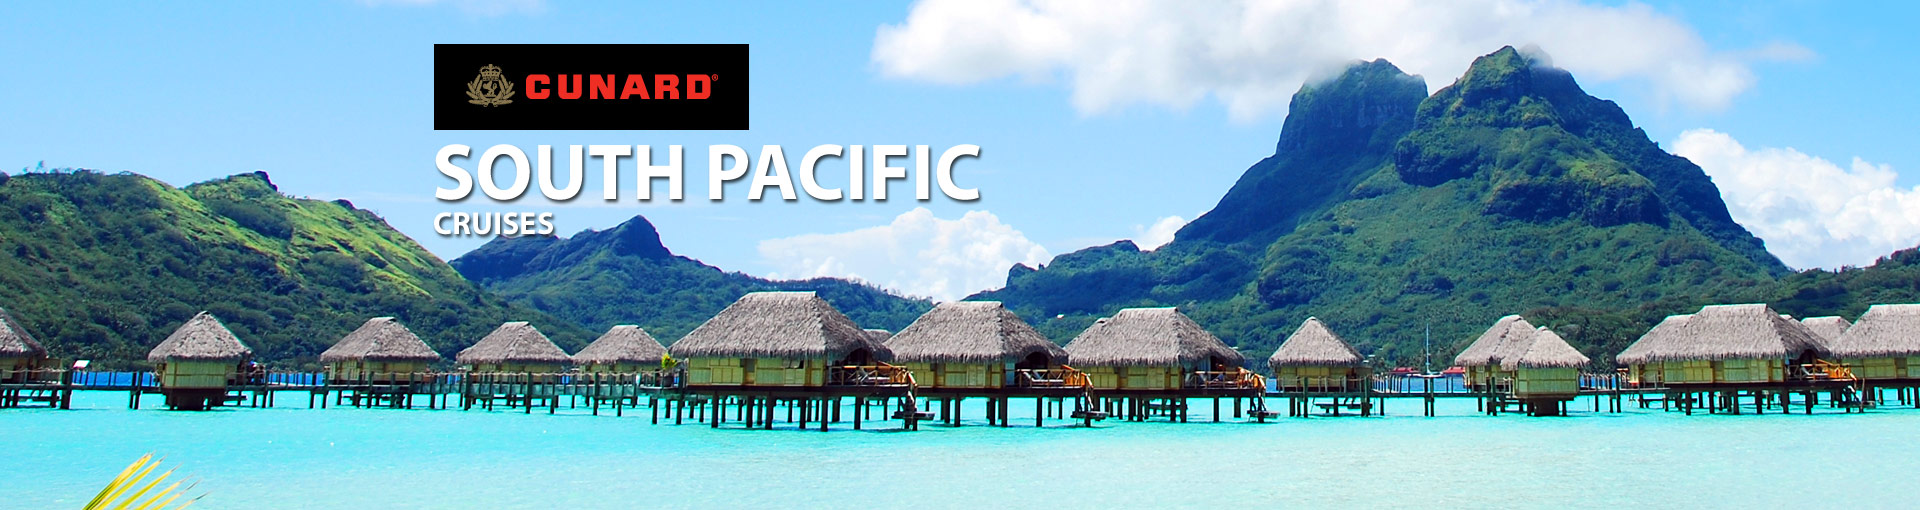 Cunard Line South Pacific Tahiti Cruises